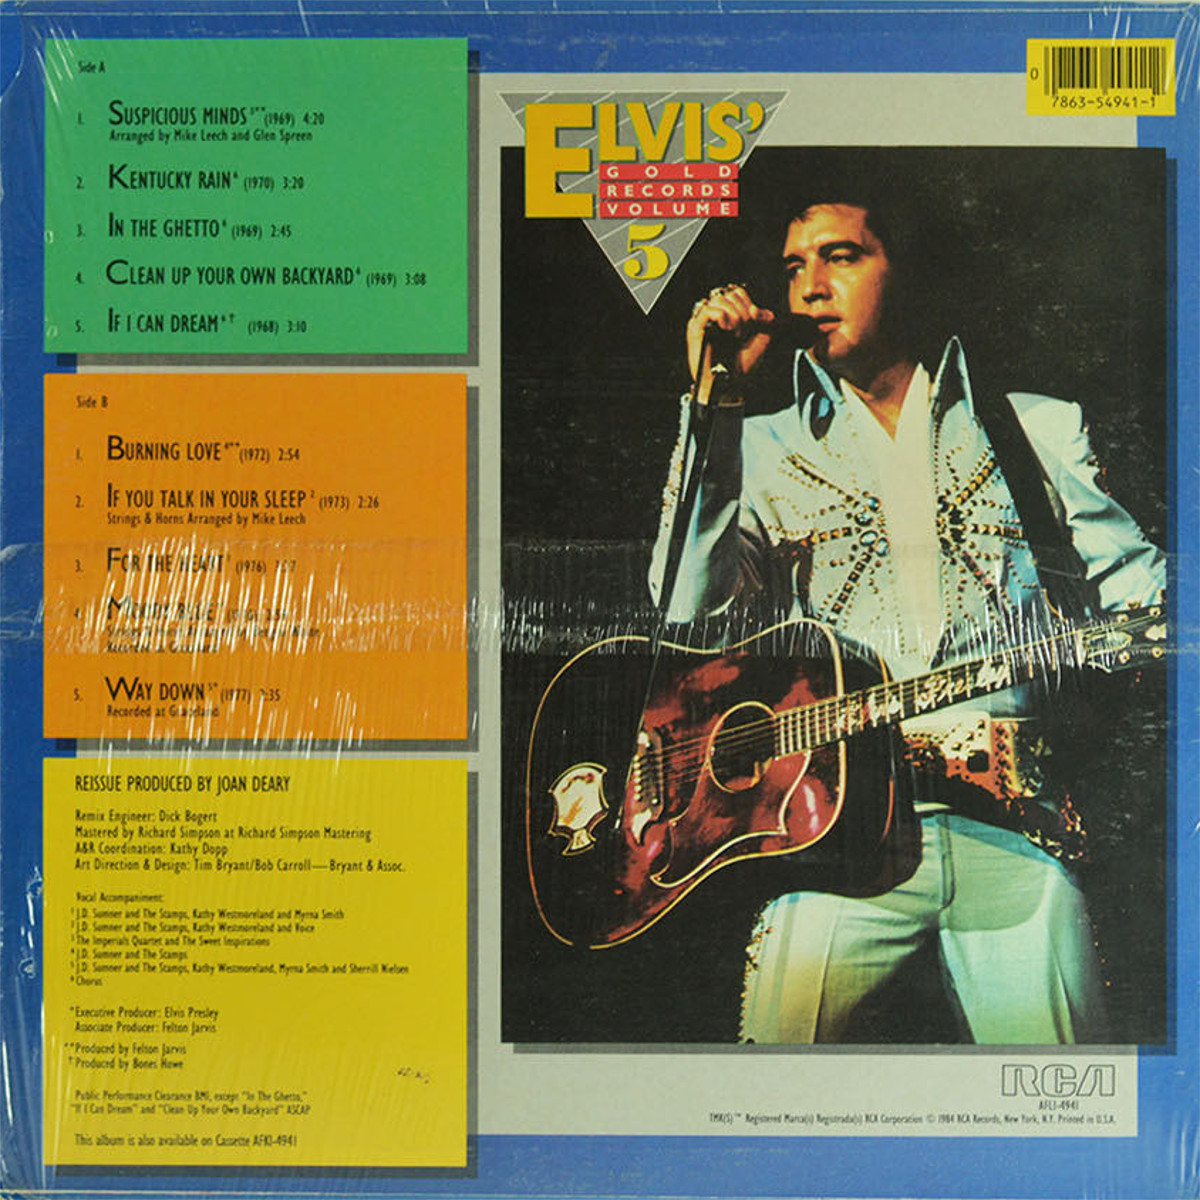 ELVIS' GOLD RECORDS VOL 5 Afl1-4941bgzun6